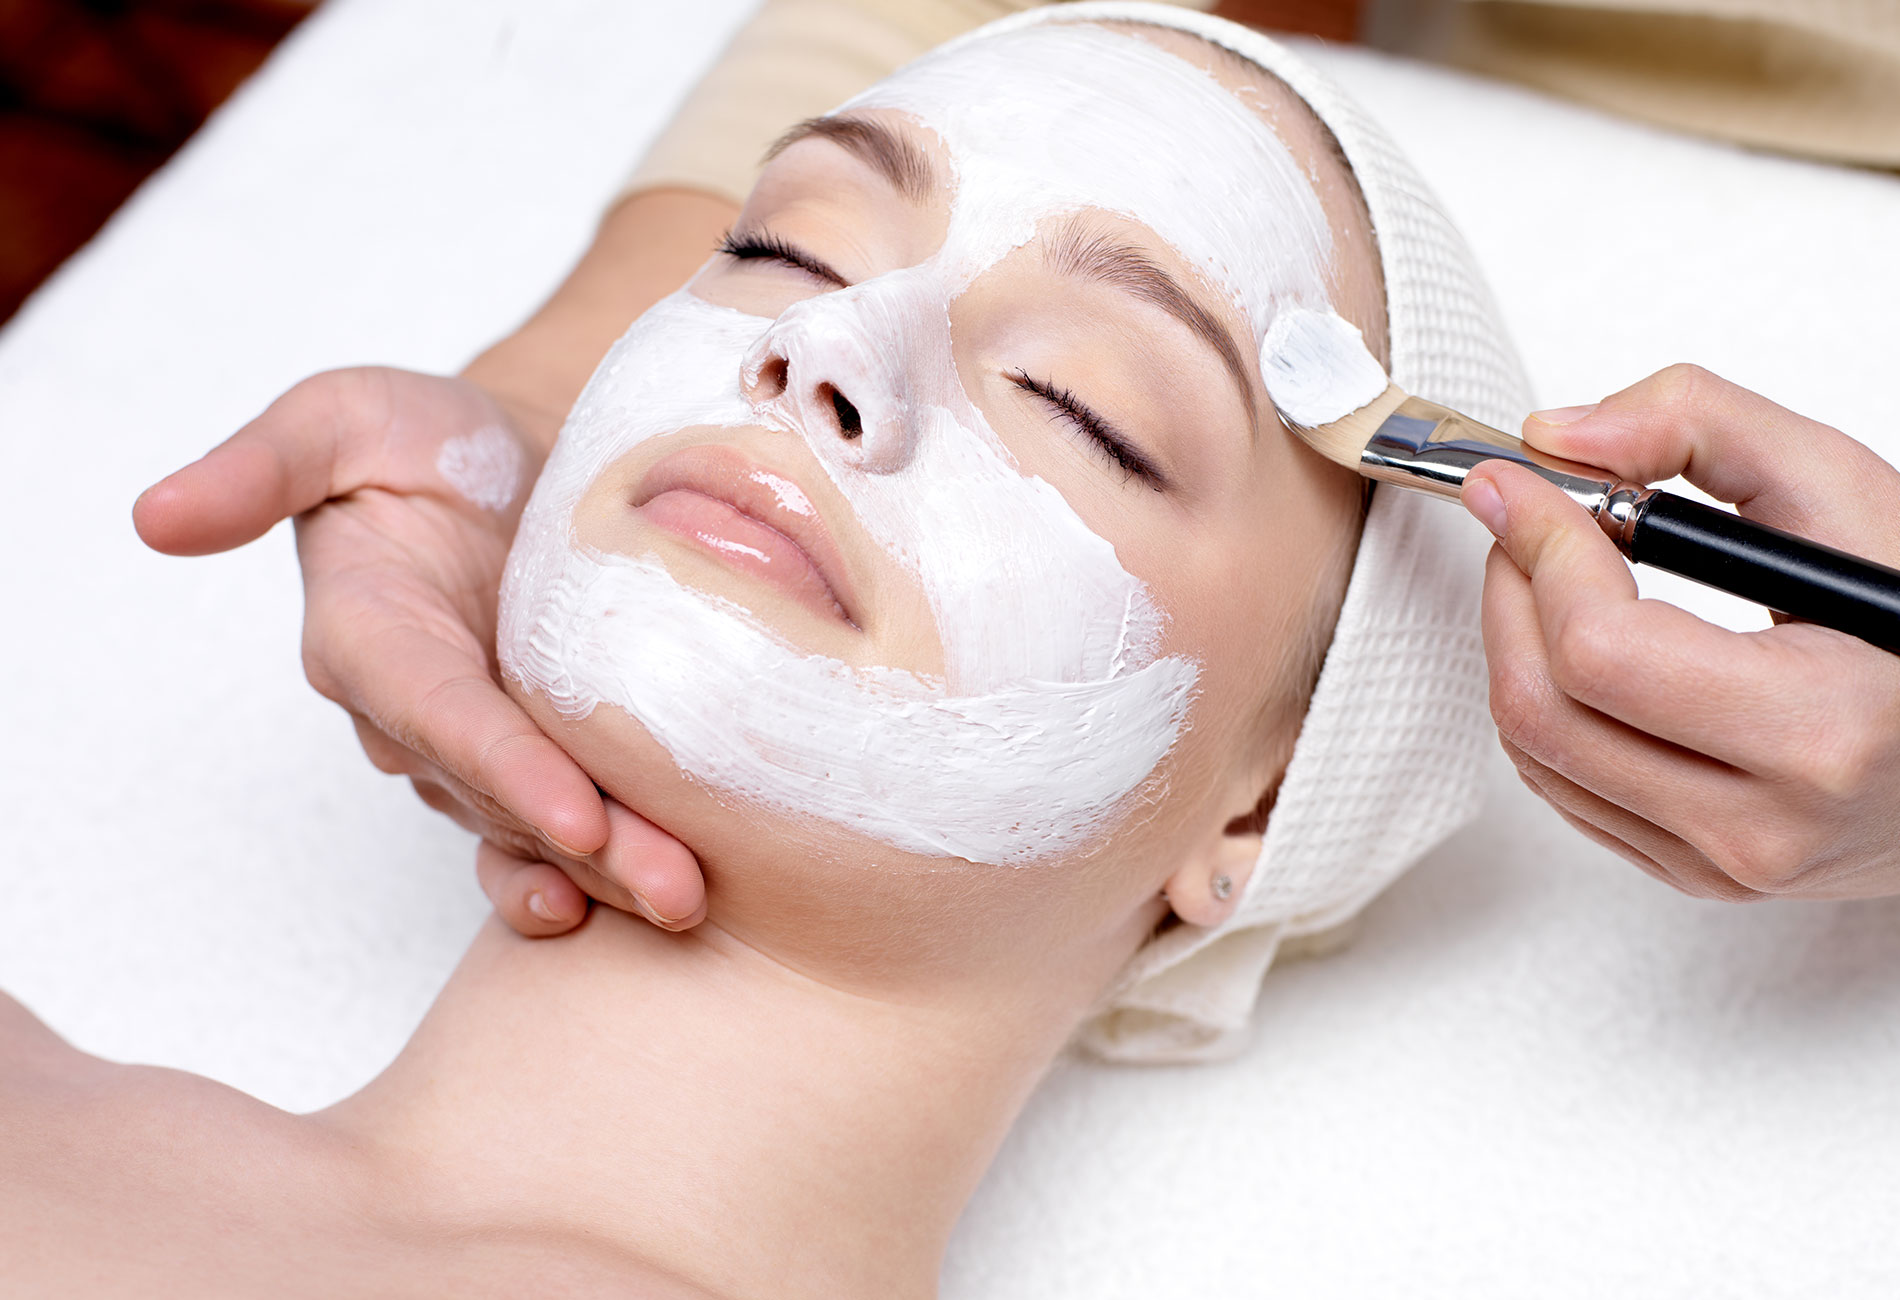 Skincare Treatments - Facial Treatment MenuExpress / Deluxe FacialsAnti Aging Facial Treatment*NEW* Chemical PeelMicrodermabrasionLED Light Therapy*NEW* DermaplaningWaxing Treatments